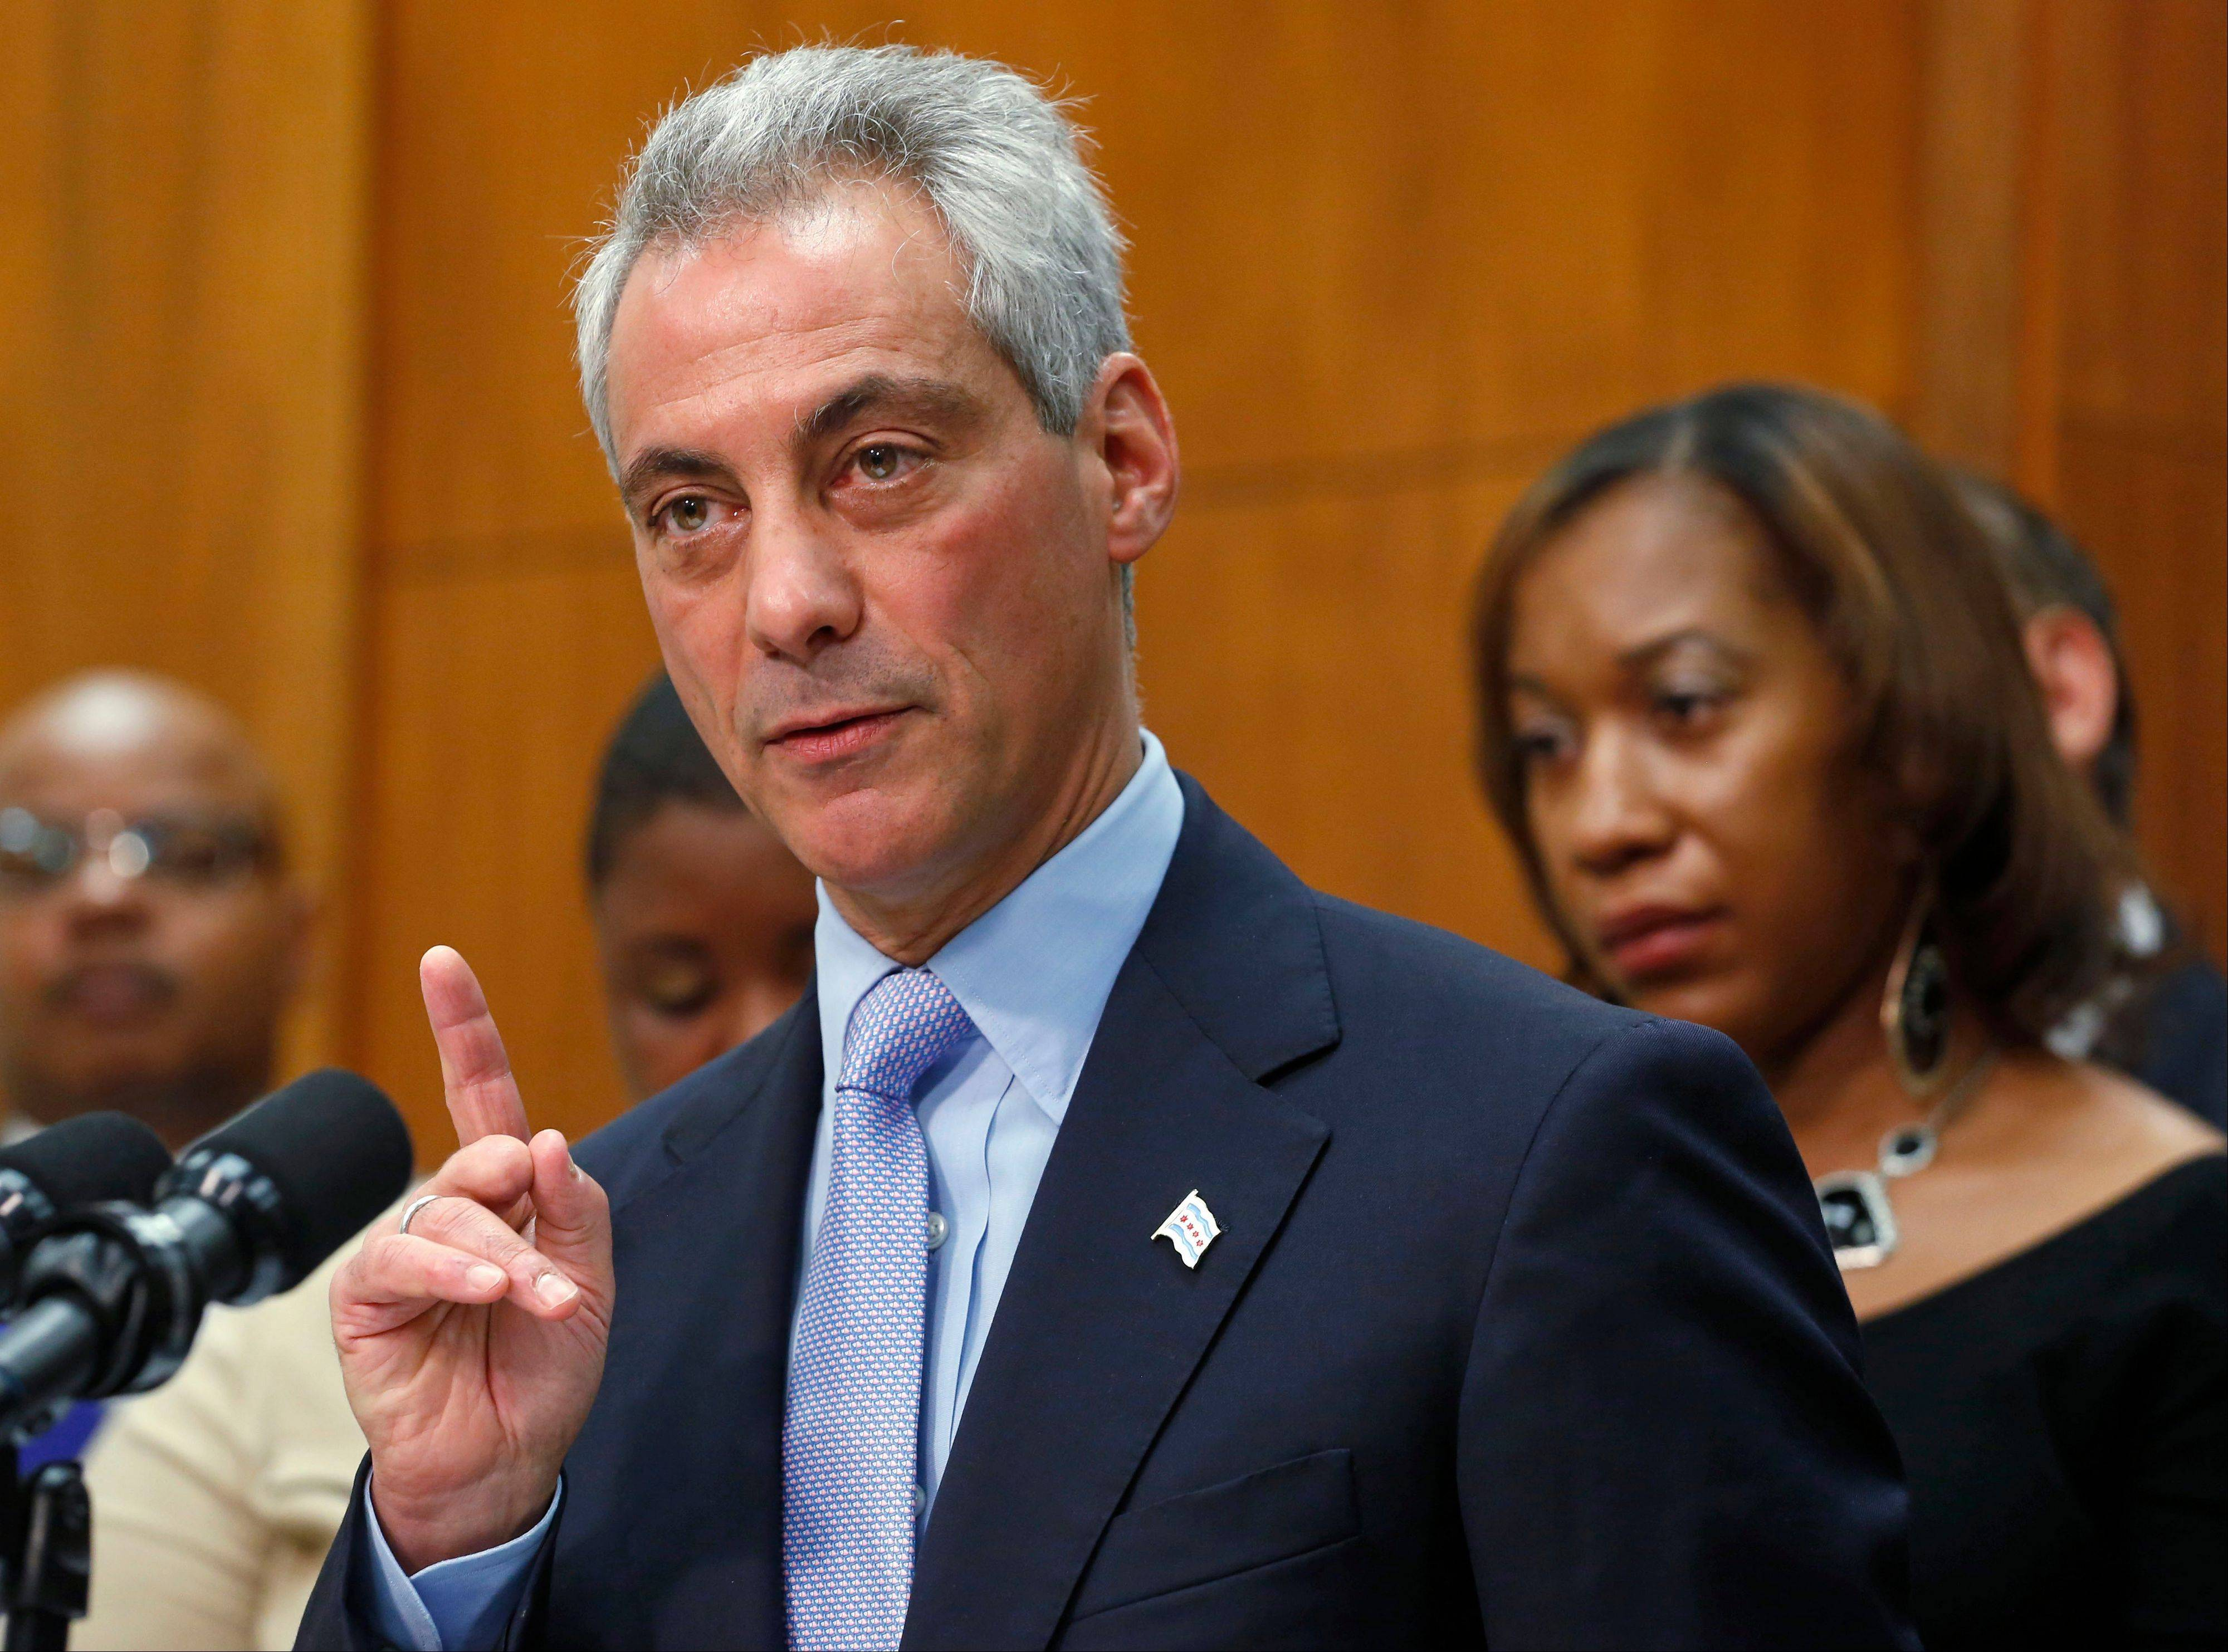 Chicago Mayor Rahm Emanuel speaks at a Tuesday news conference surrounded by the members of families affected by gun violence.